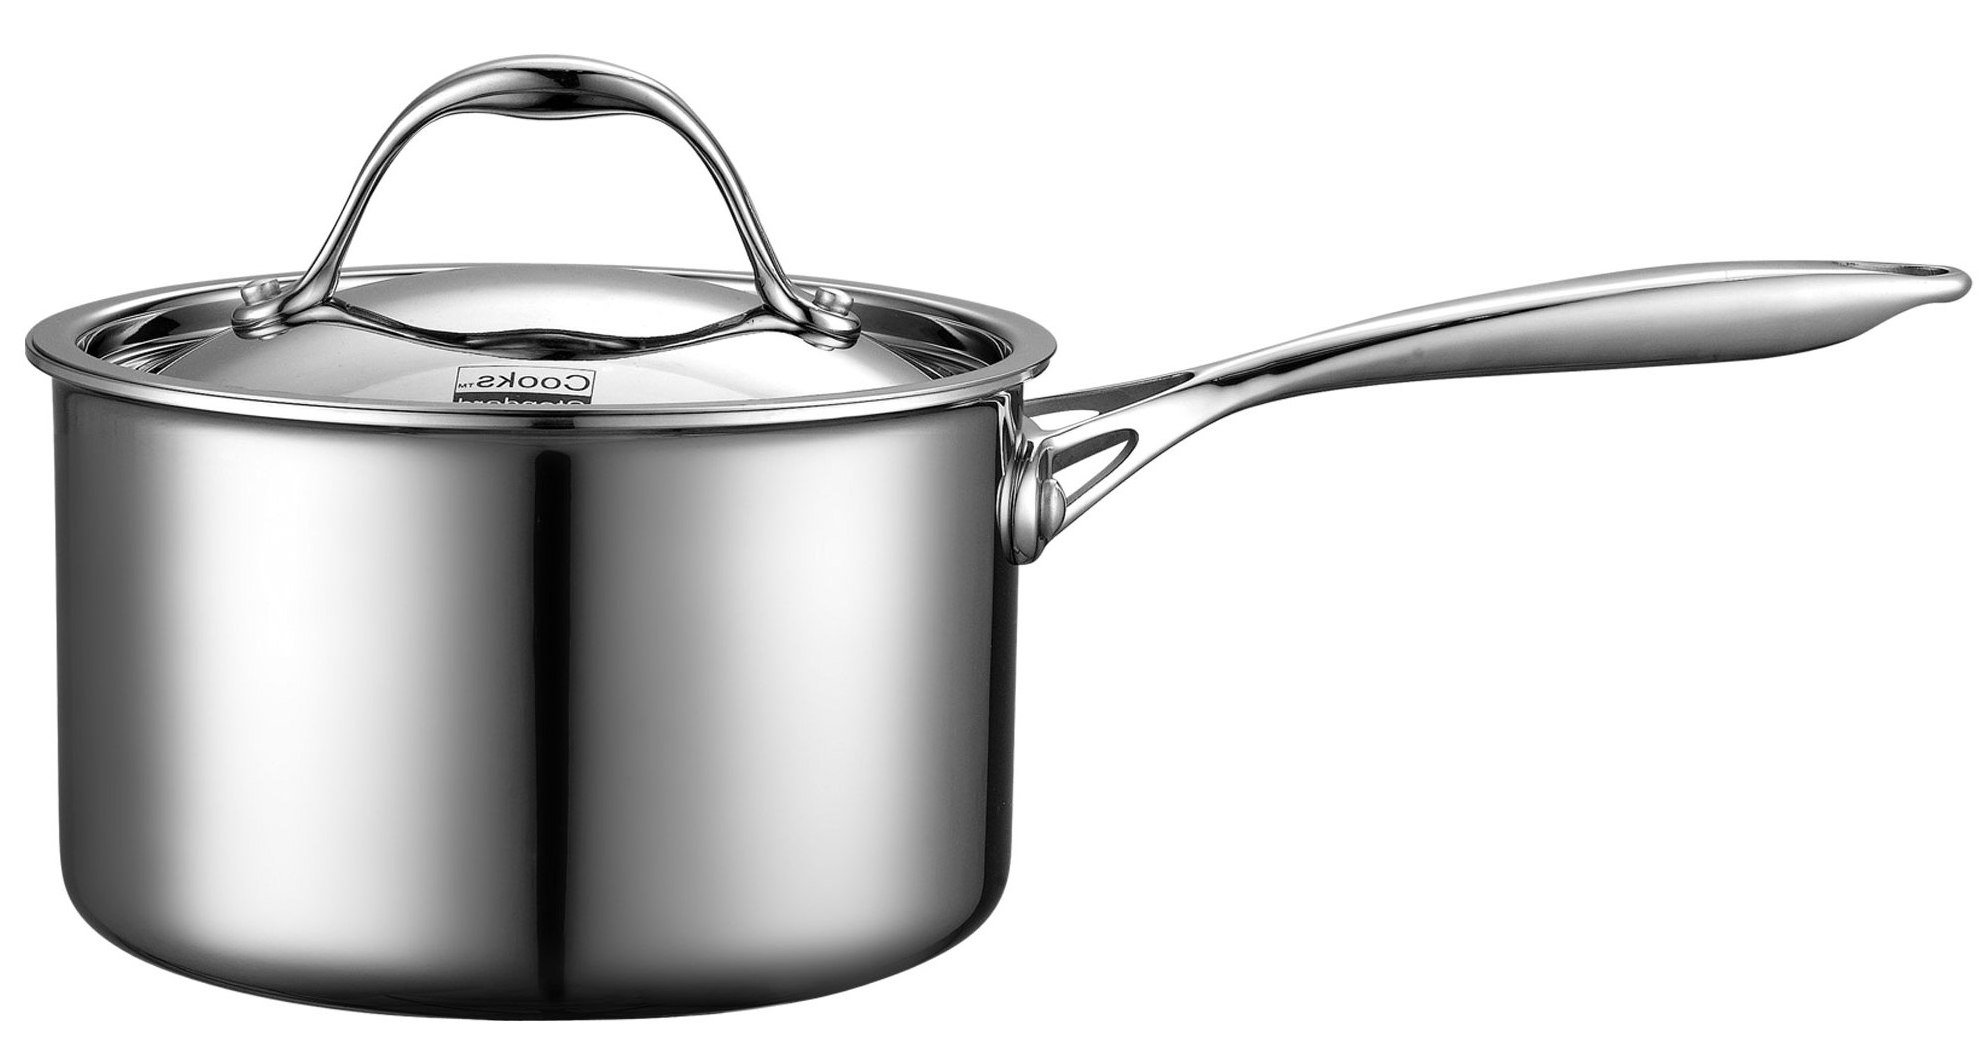 Cooks Standard 3-Quart Multi-Ply Clad Stainless Steel Saucepan with Lid by Cooks Standard